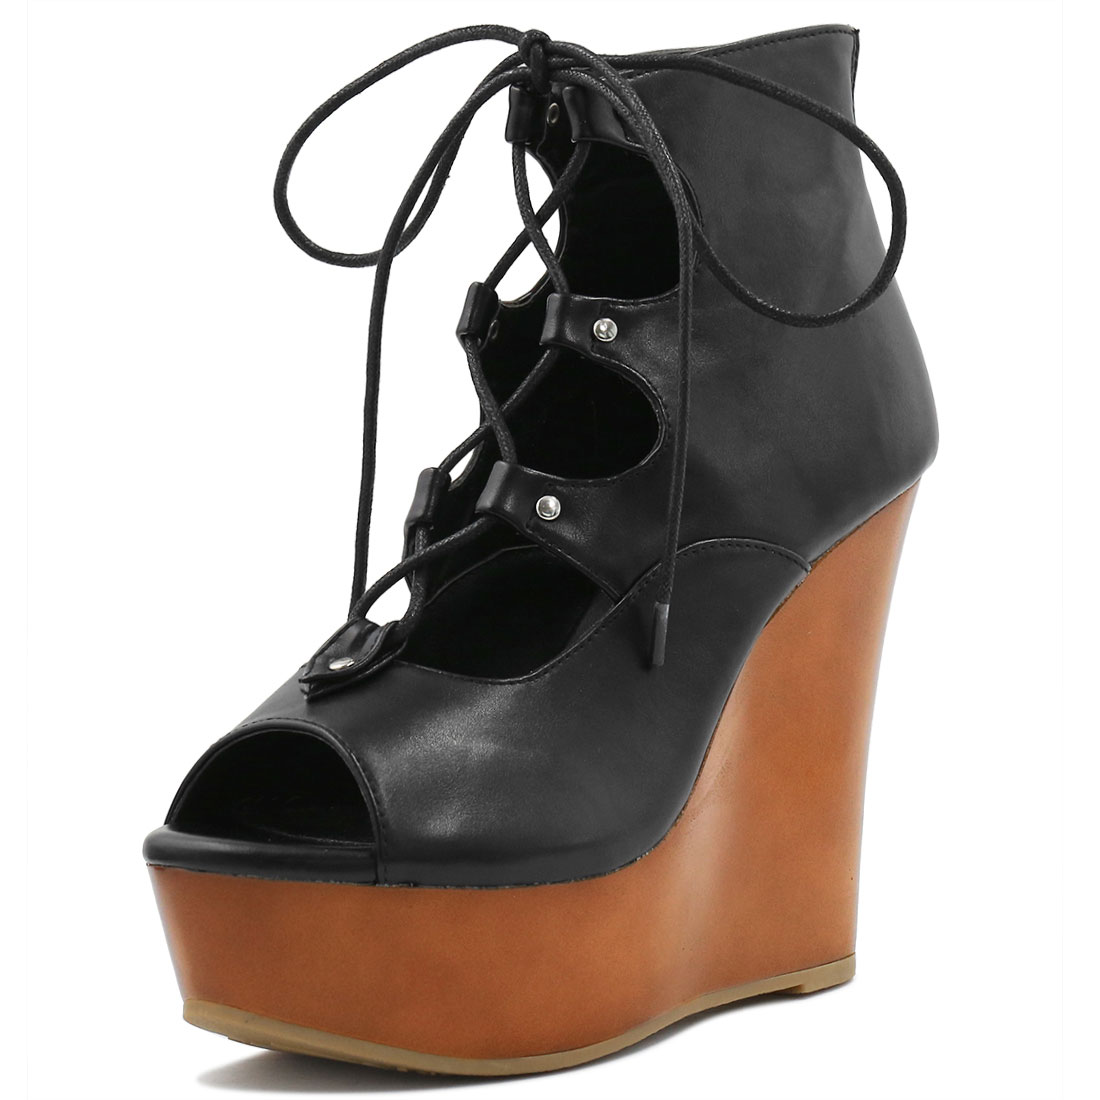 Woman Peep Toe Lace-Up Cutout Platform Wedge Sandals Black US 7